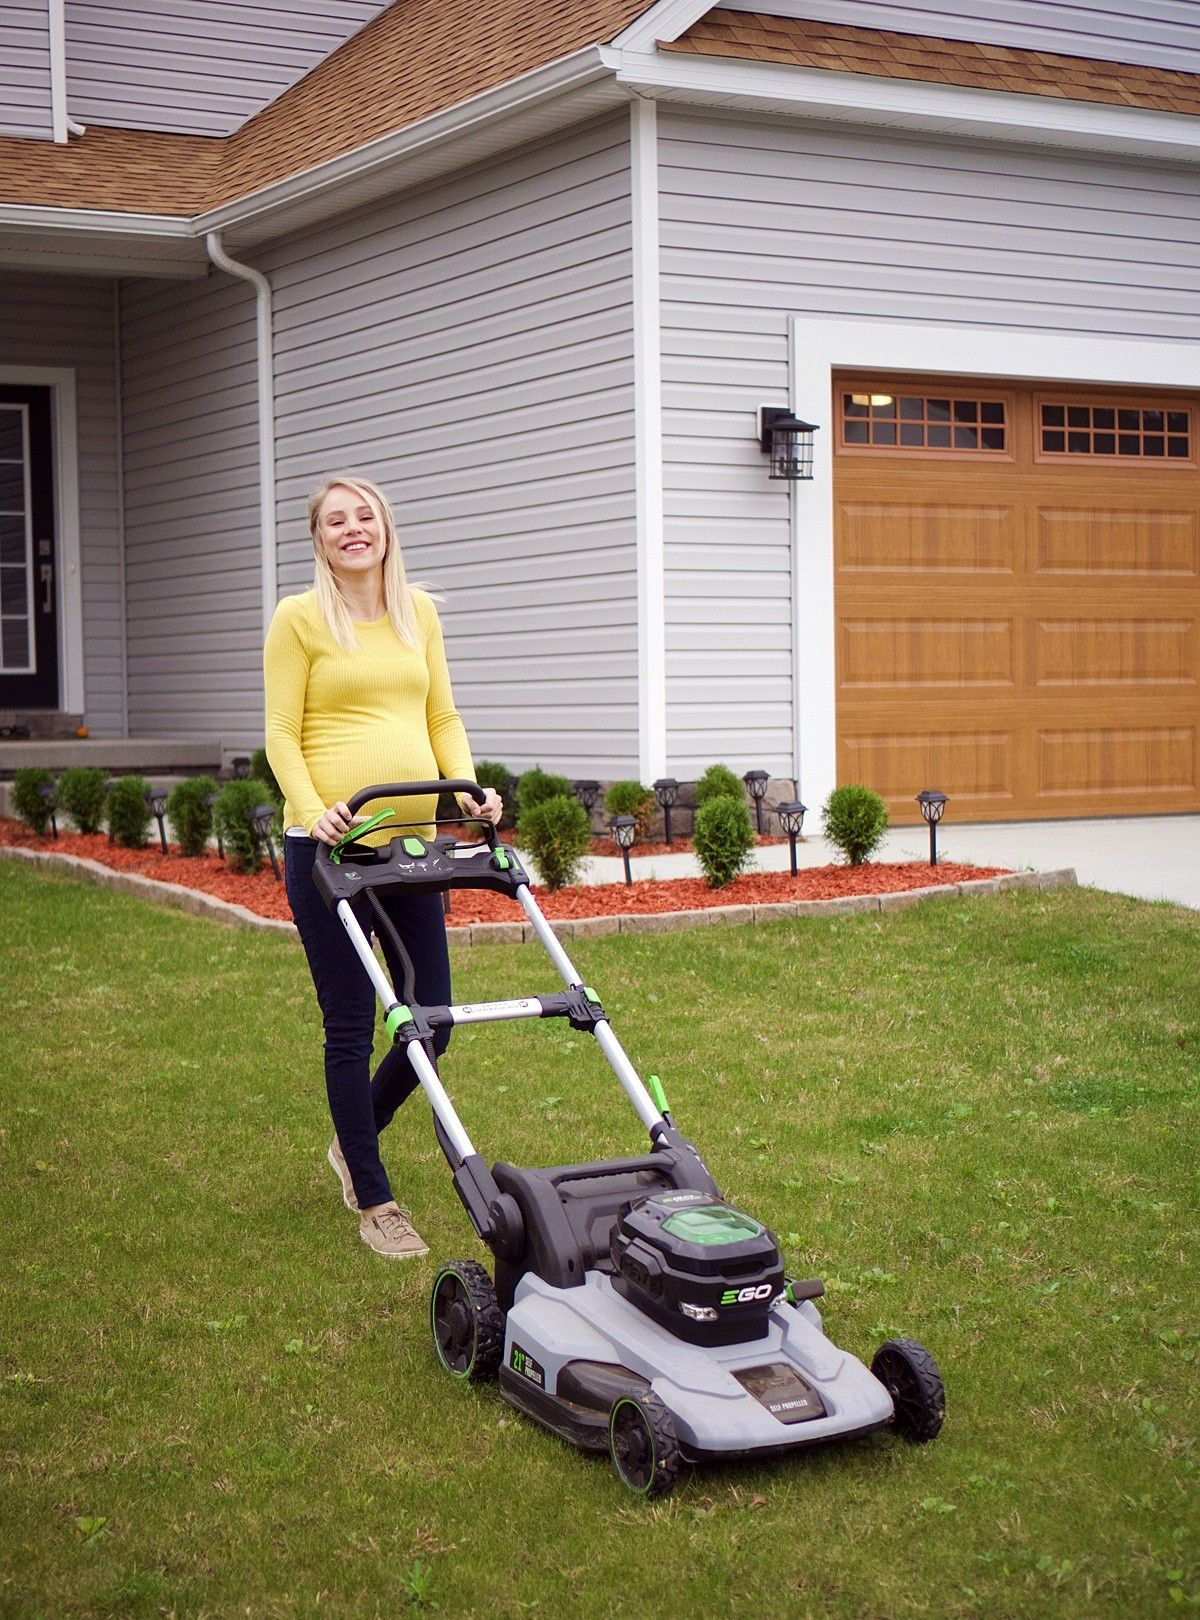 How To Go About Choosing A Lawn Mower Electric Mower Lawn Mower